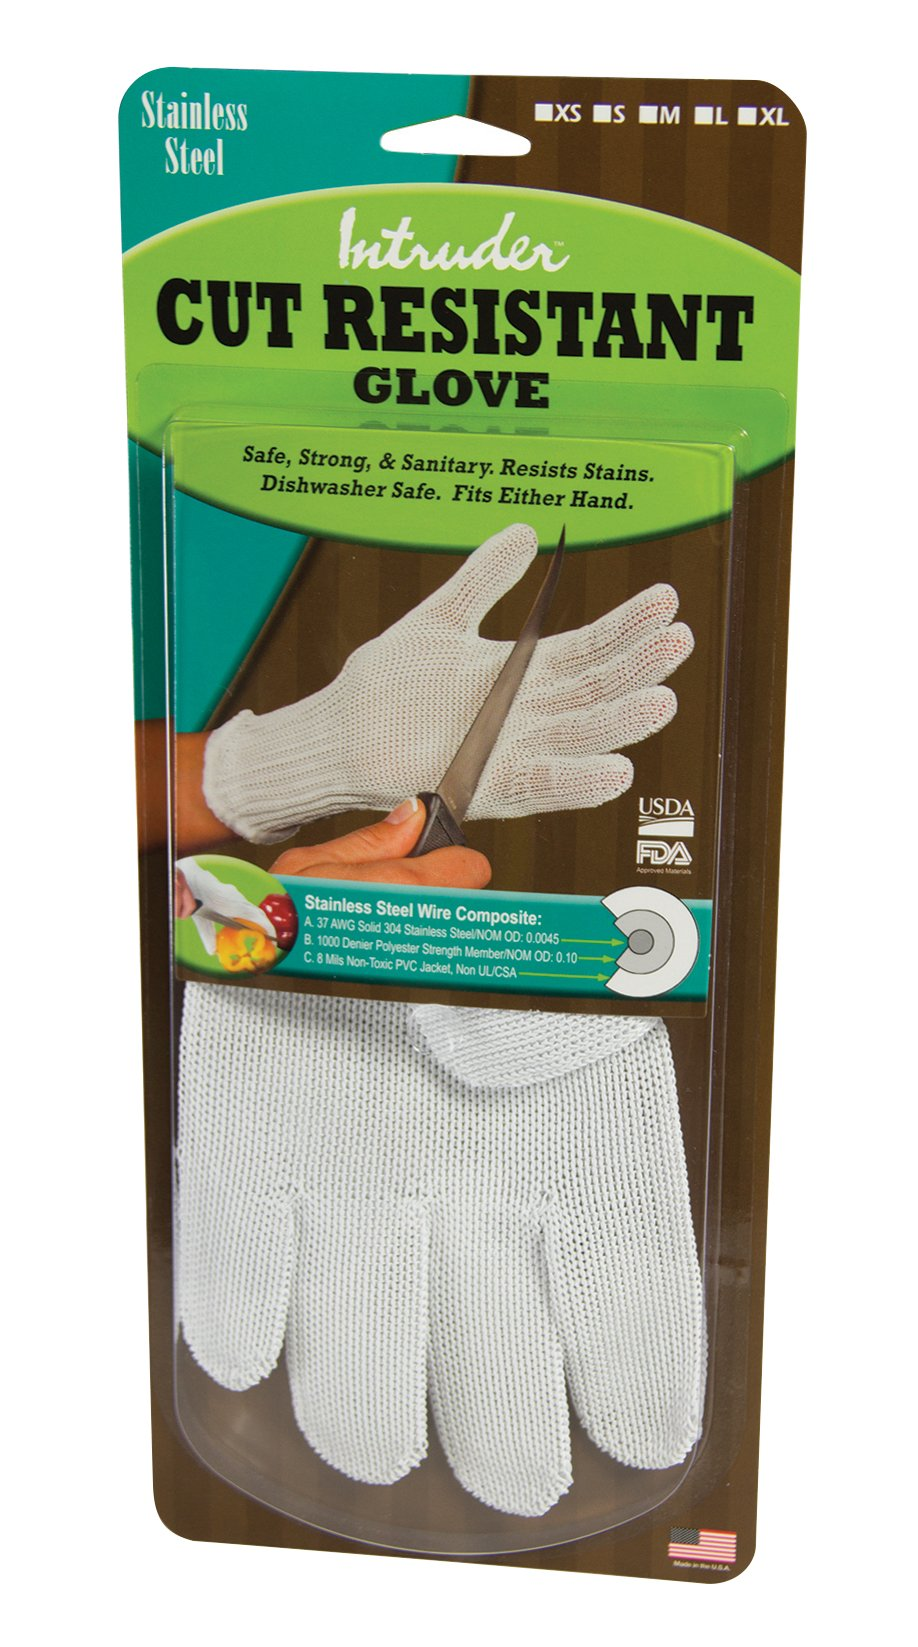 Intruder 15003 Resistant Mesh Cutting Gloves, Made in The USA, Size Medium, White